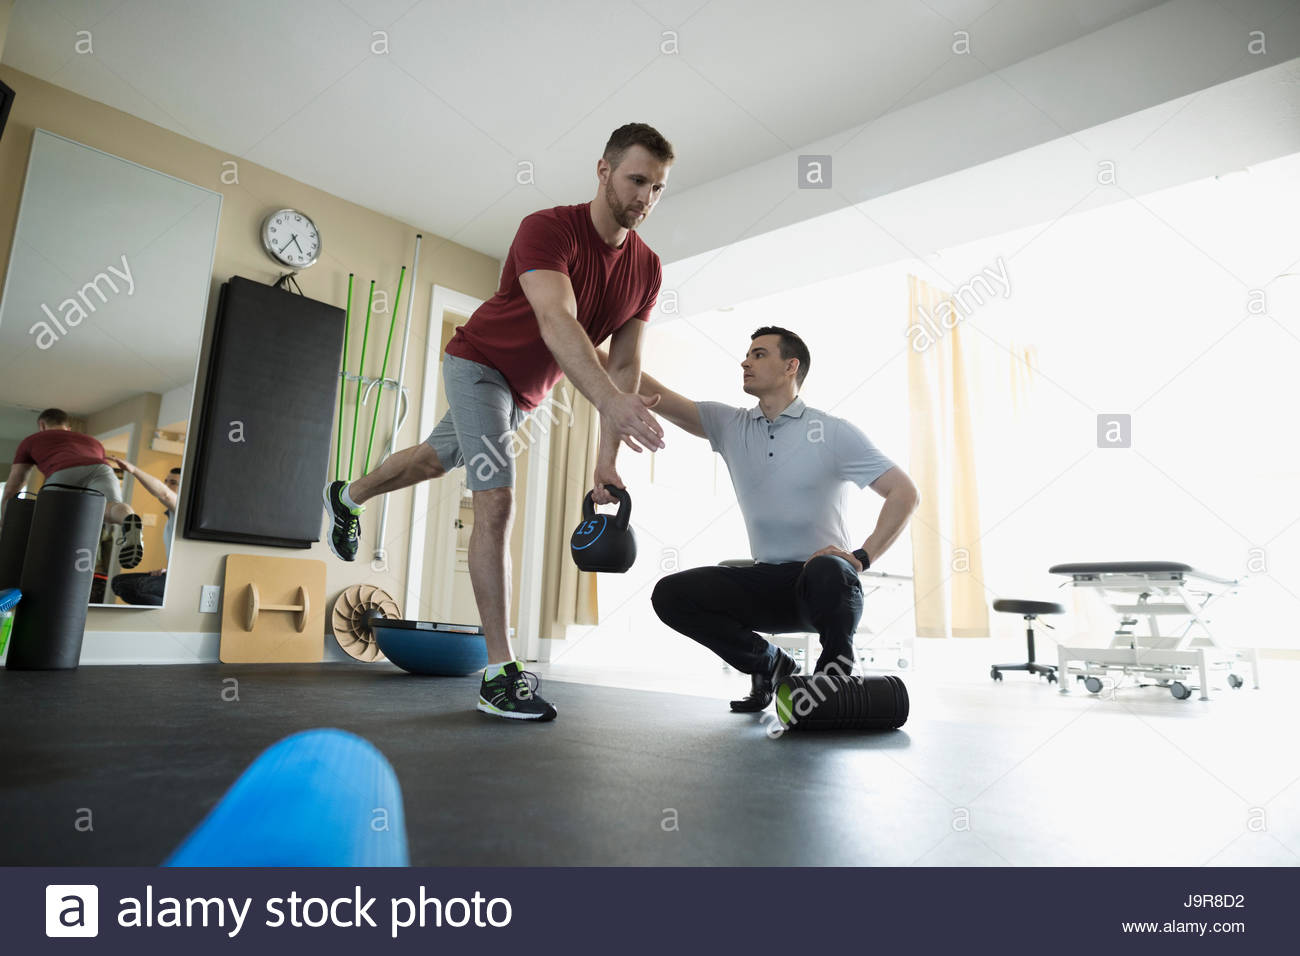 Male physiotherapist guiding client balancing with kettle bell in clinic gym - Stock Image